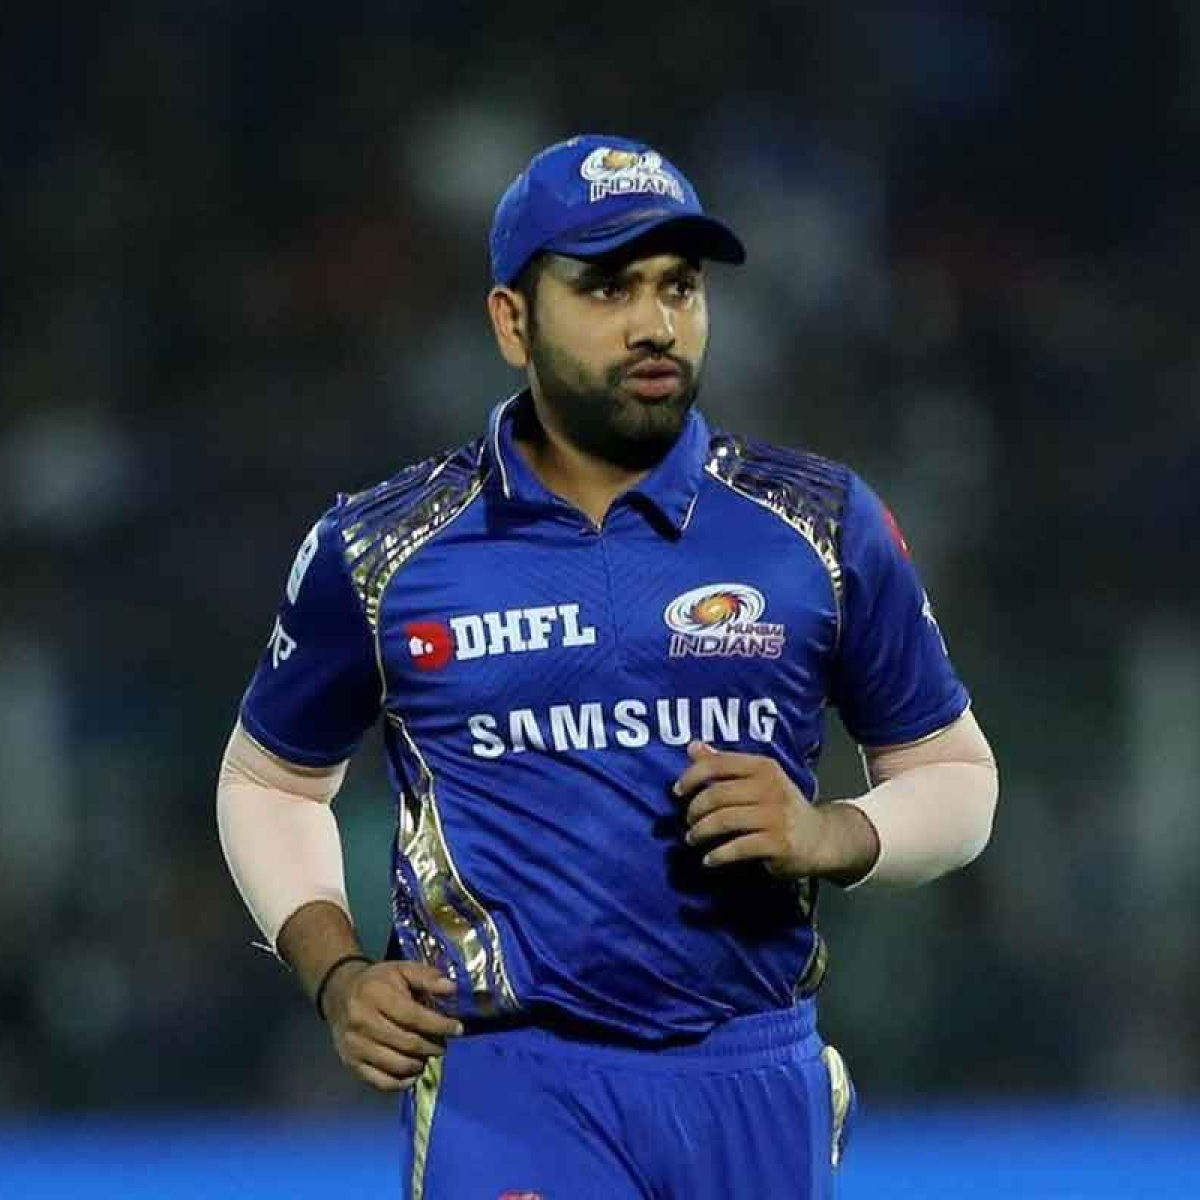 Rohit Sharma watches football more than cricket, says it's pleasing to the eye